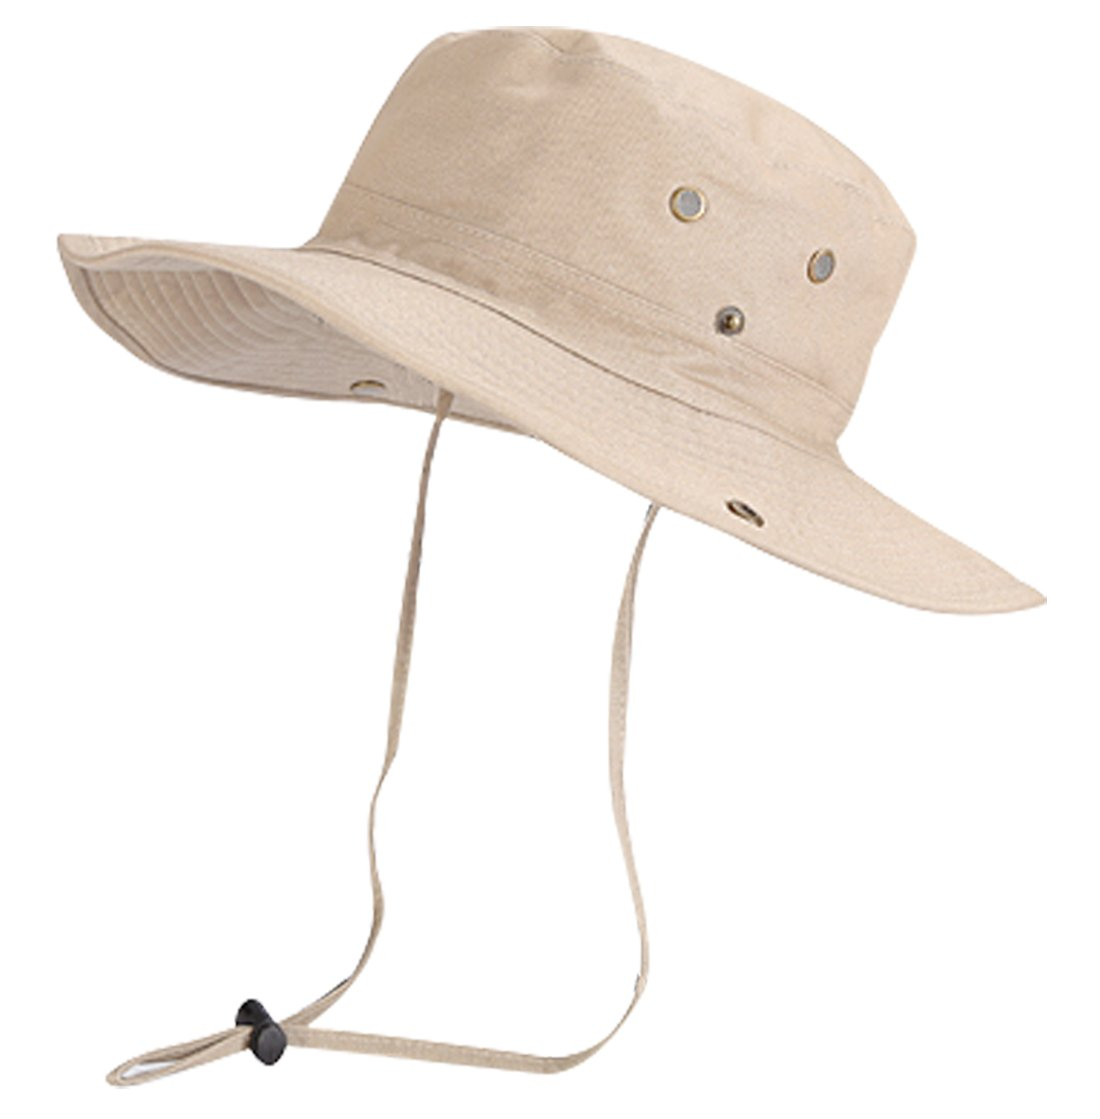 FYDRISE Sun Hats Wide Brim Chin Strap Boonie Hats for Hiking & Fishing